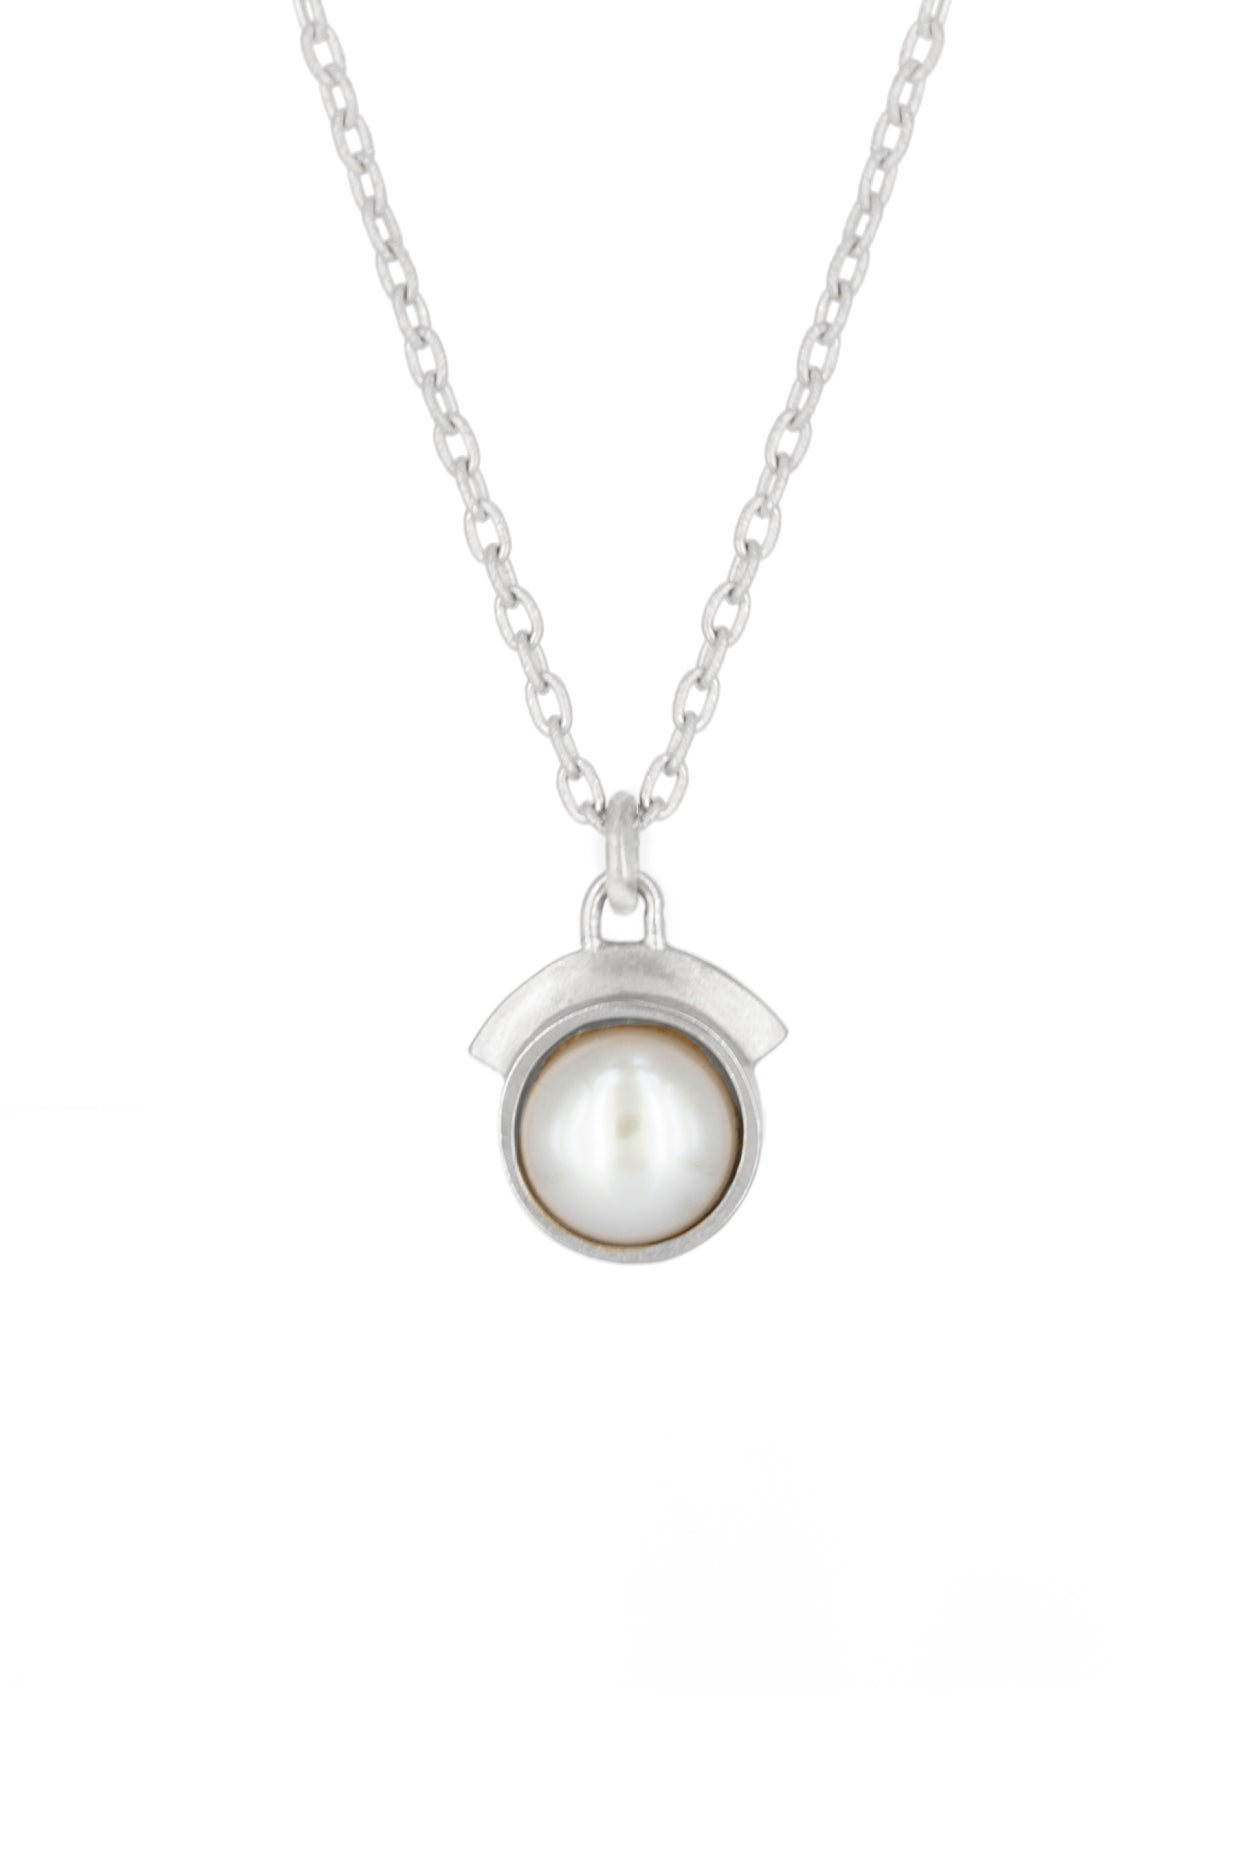 Image of PEARL DREAM SEQUINS NECKLACE- SILVER